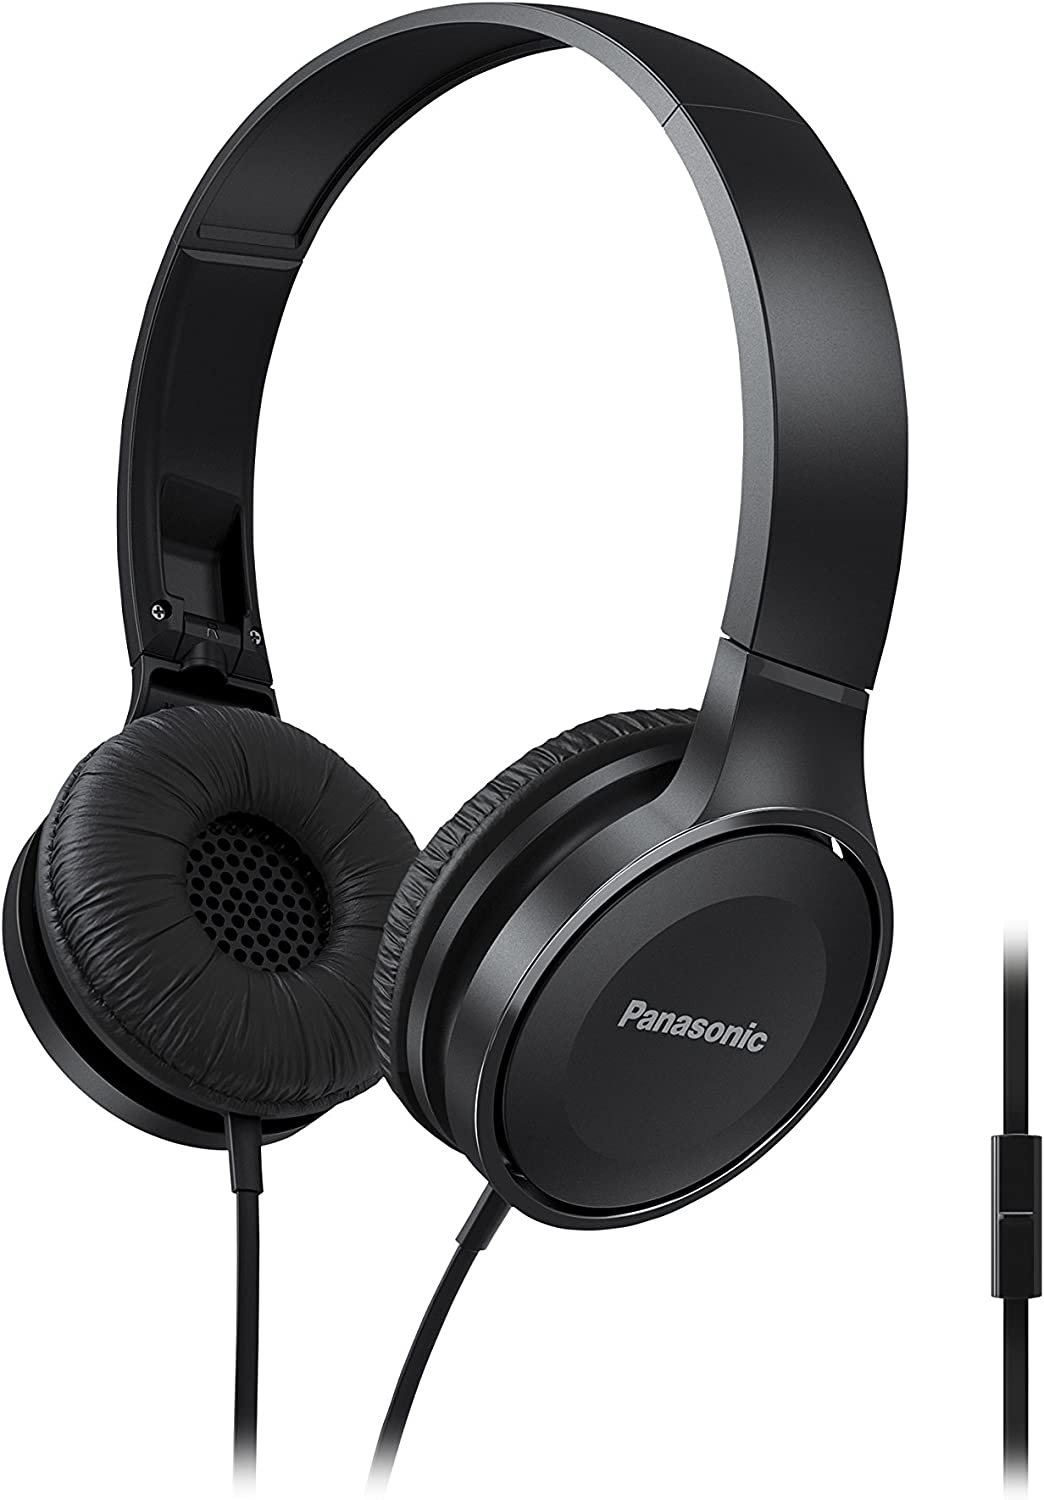 PANASONIC Lightweight Foldable Headphones with Microphone, Call Controller and 3.9 ft Audio Cord Compatible with iPhone, BlackBerry, Android - RP-HF100M-K - On-Ear Headphones (Black)